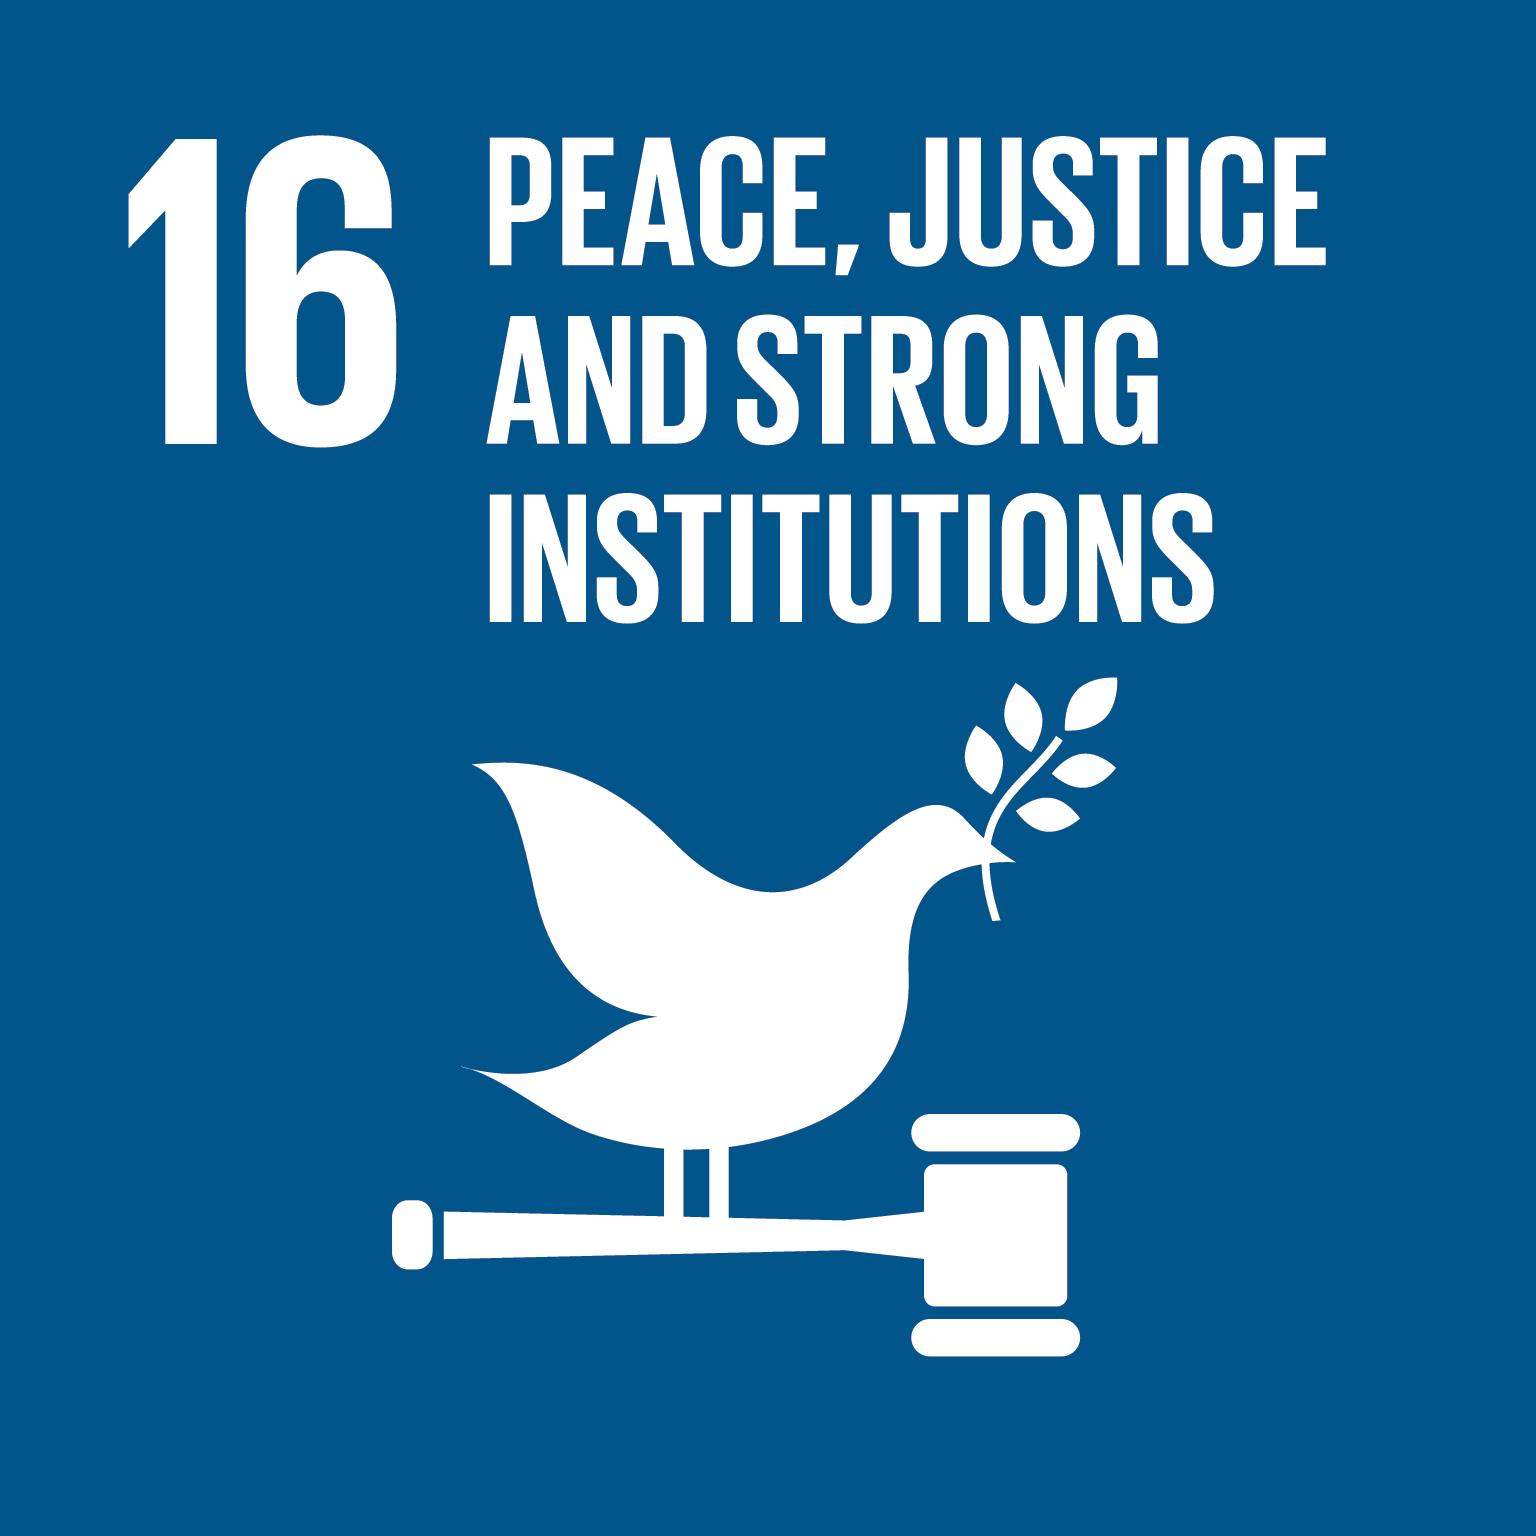 SDG16: Peace, Justice and Strong Institutions